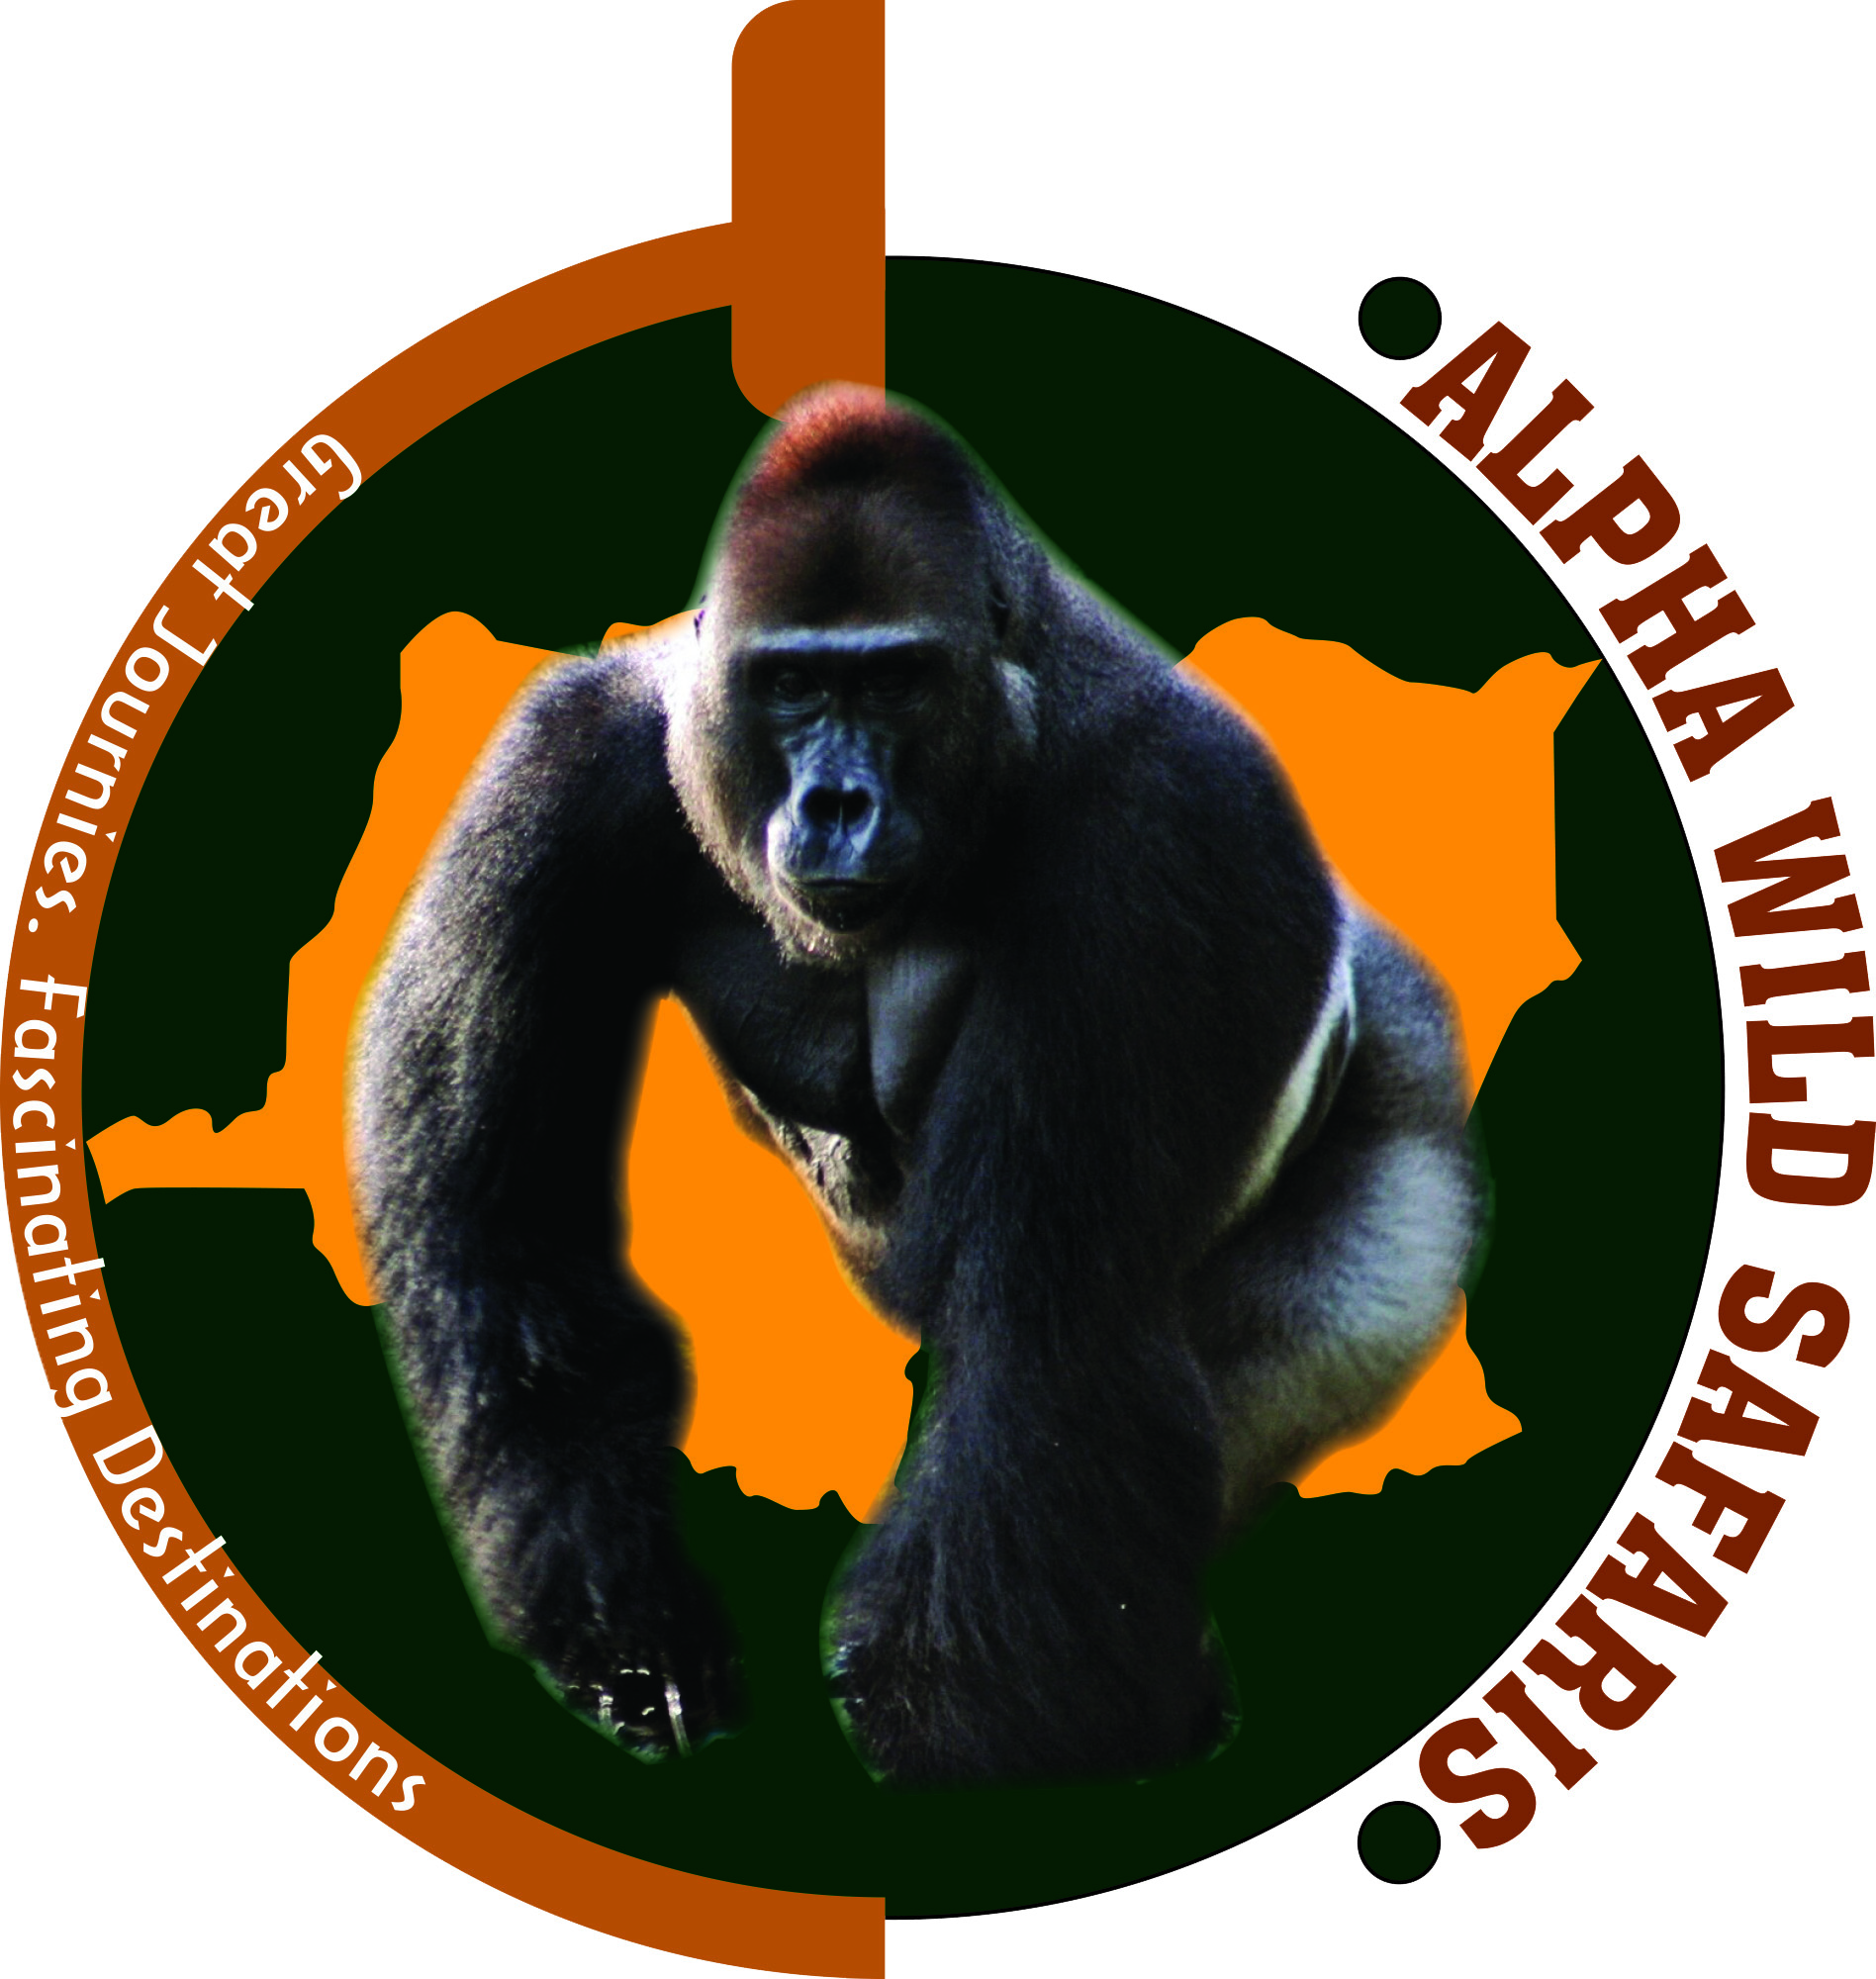 Alpha Wild Safaris Limited-Great Jouneys. Fascinating Destinations.